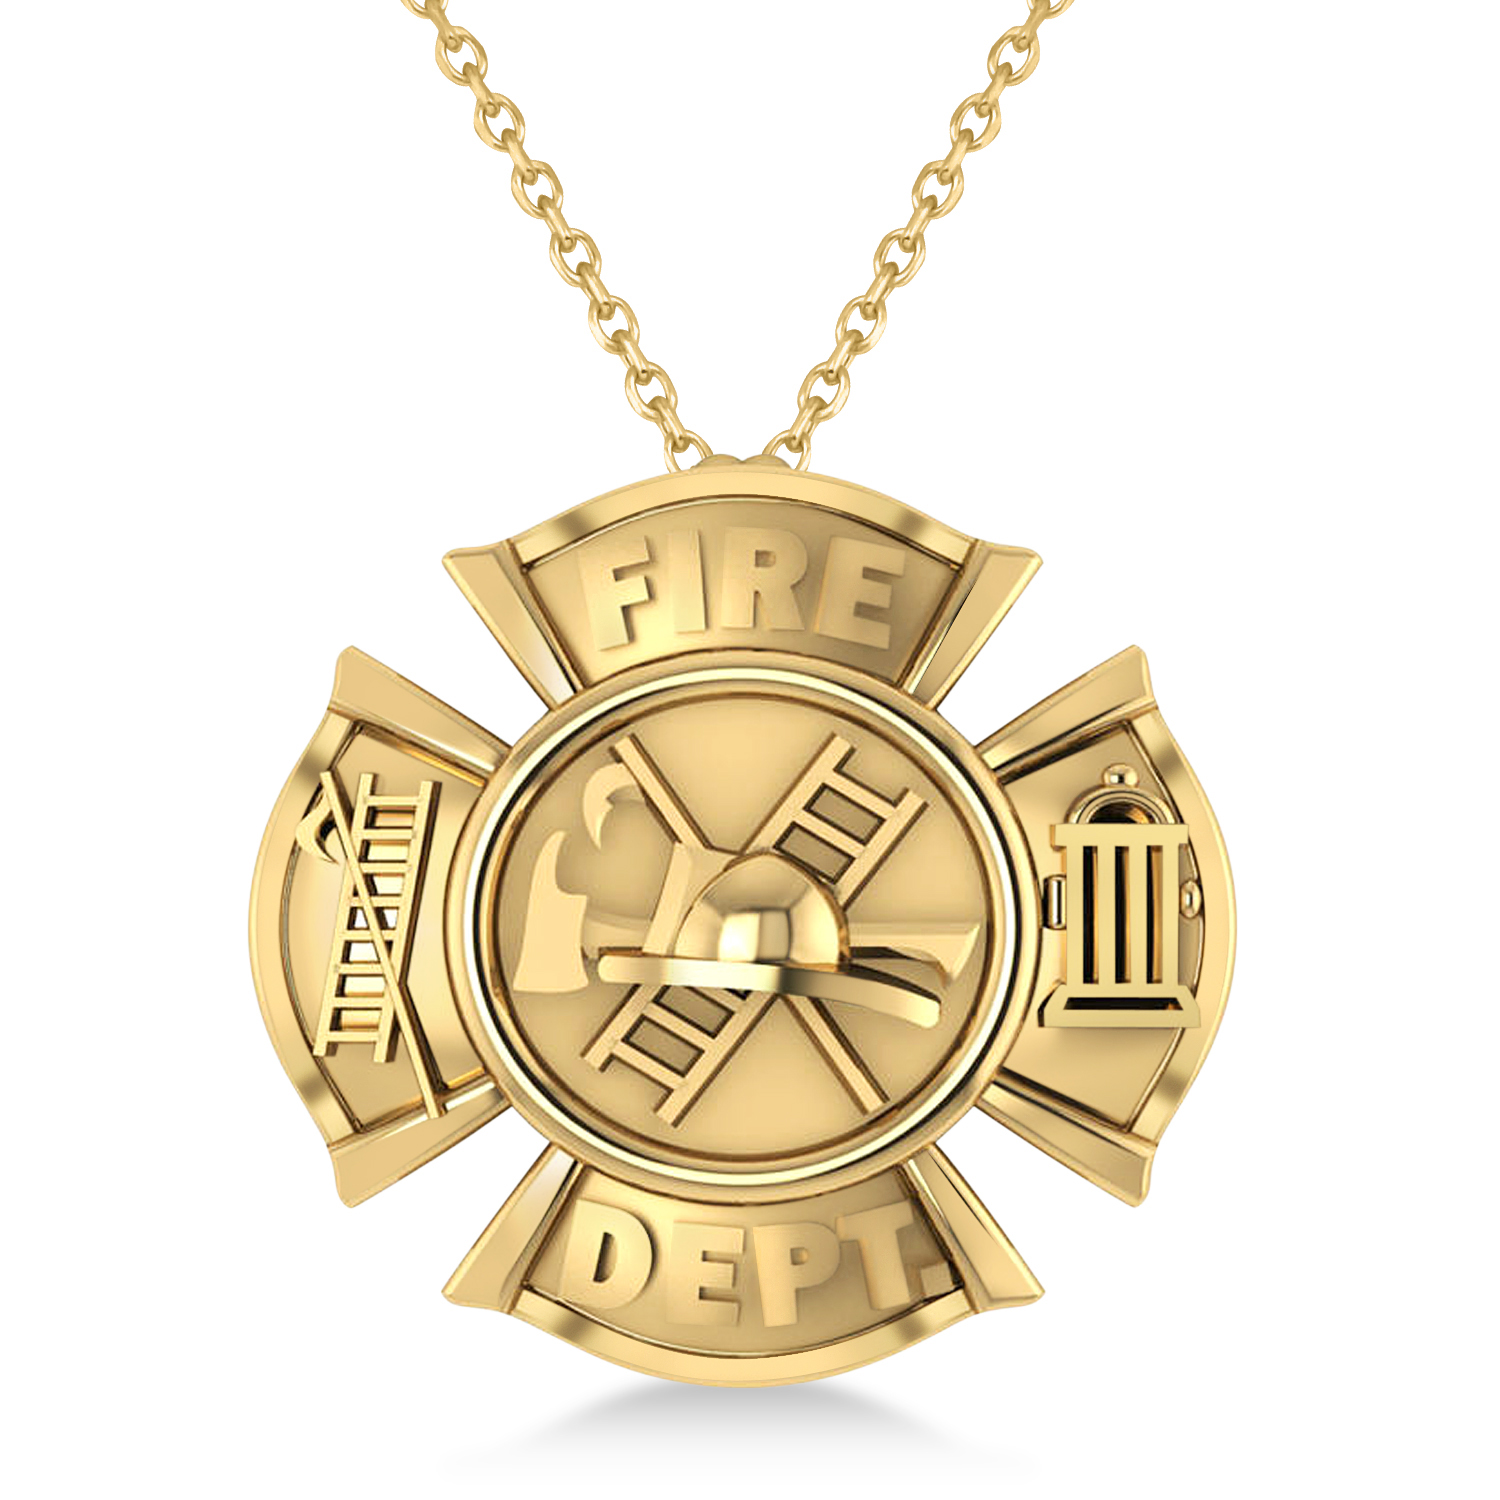 Fire Department Badge Pendant Necklace 14k Yellow Gold